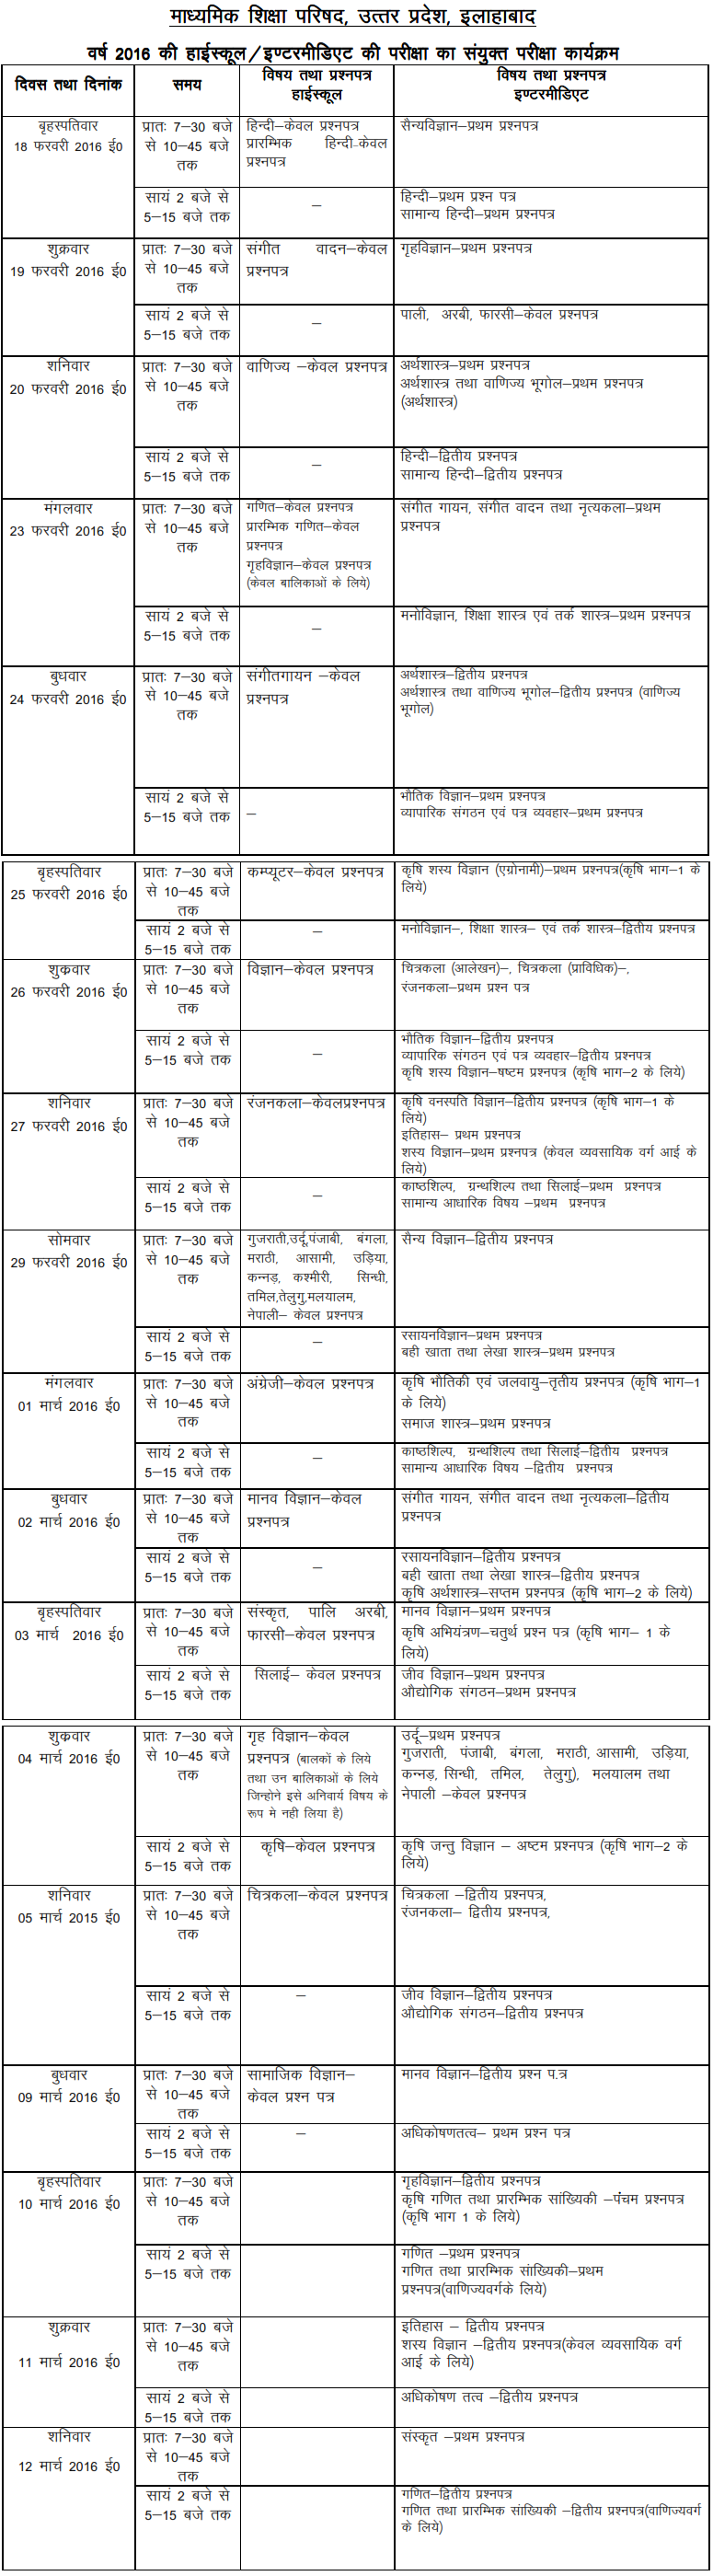 UP Board Intermediate Exam 2016 Time Table